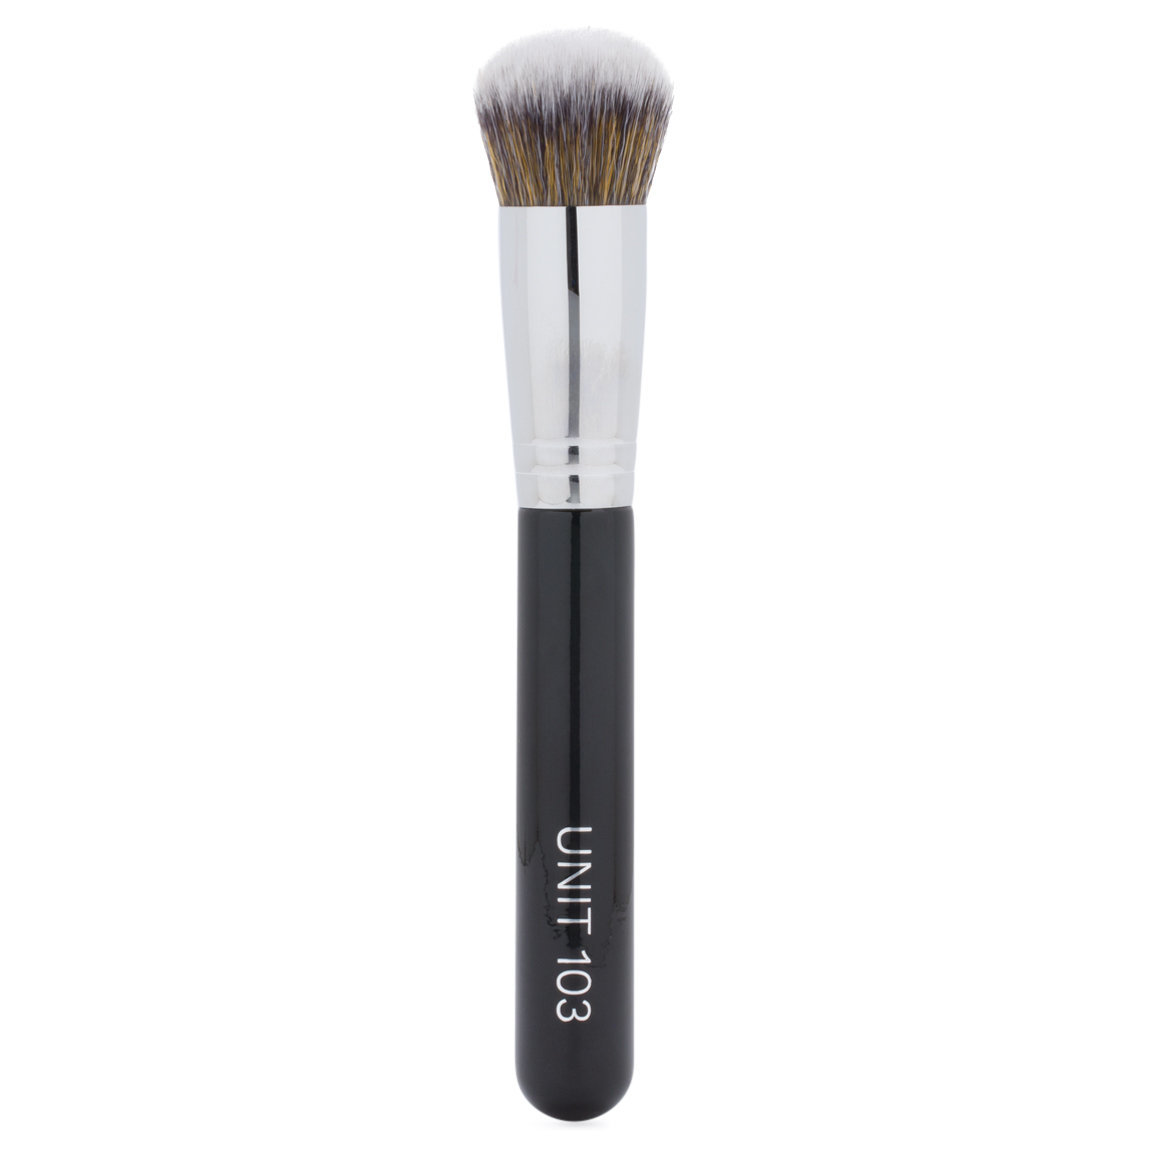 UNITS UNIT 103 Foundation Brush product swatch.